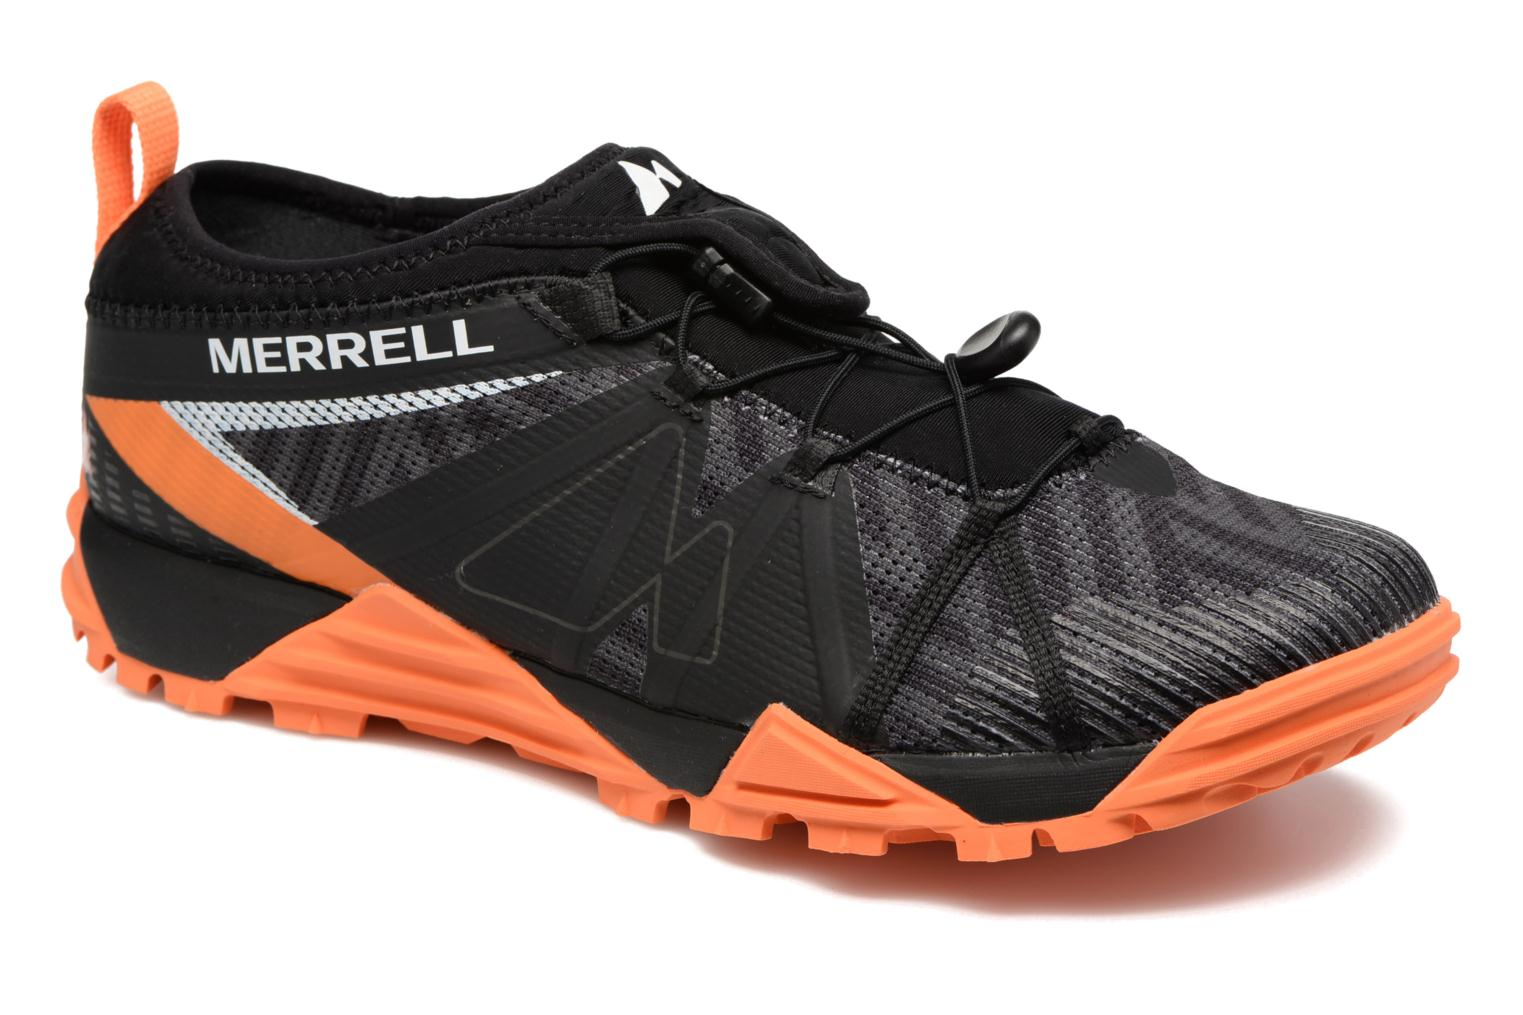 Avalaunch Tough Mudder by MerrellRebajas - 30%